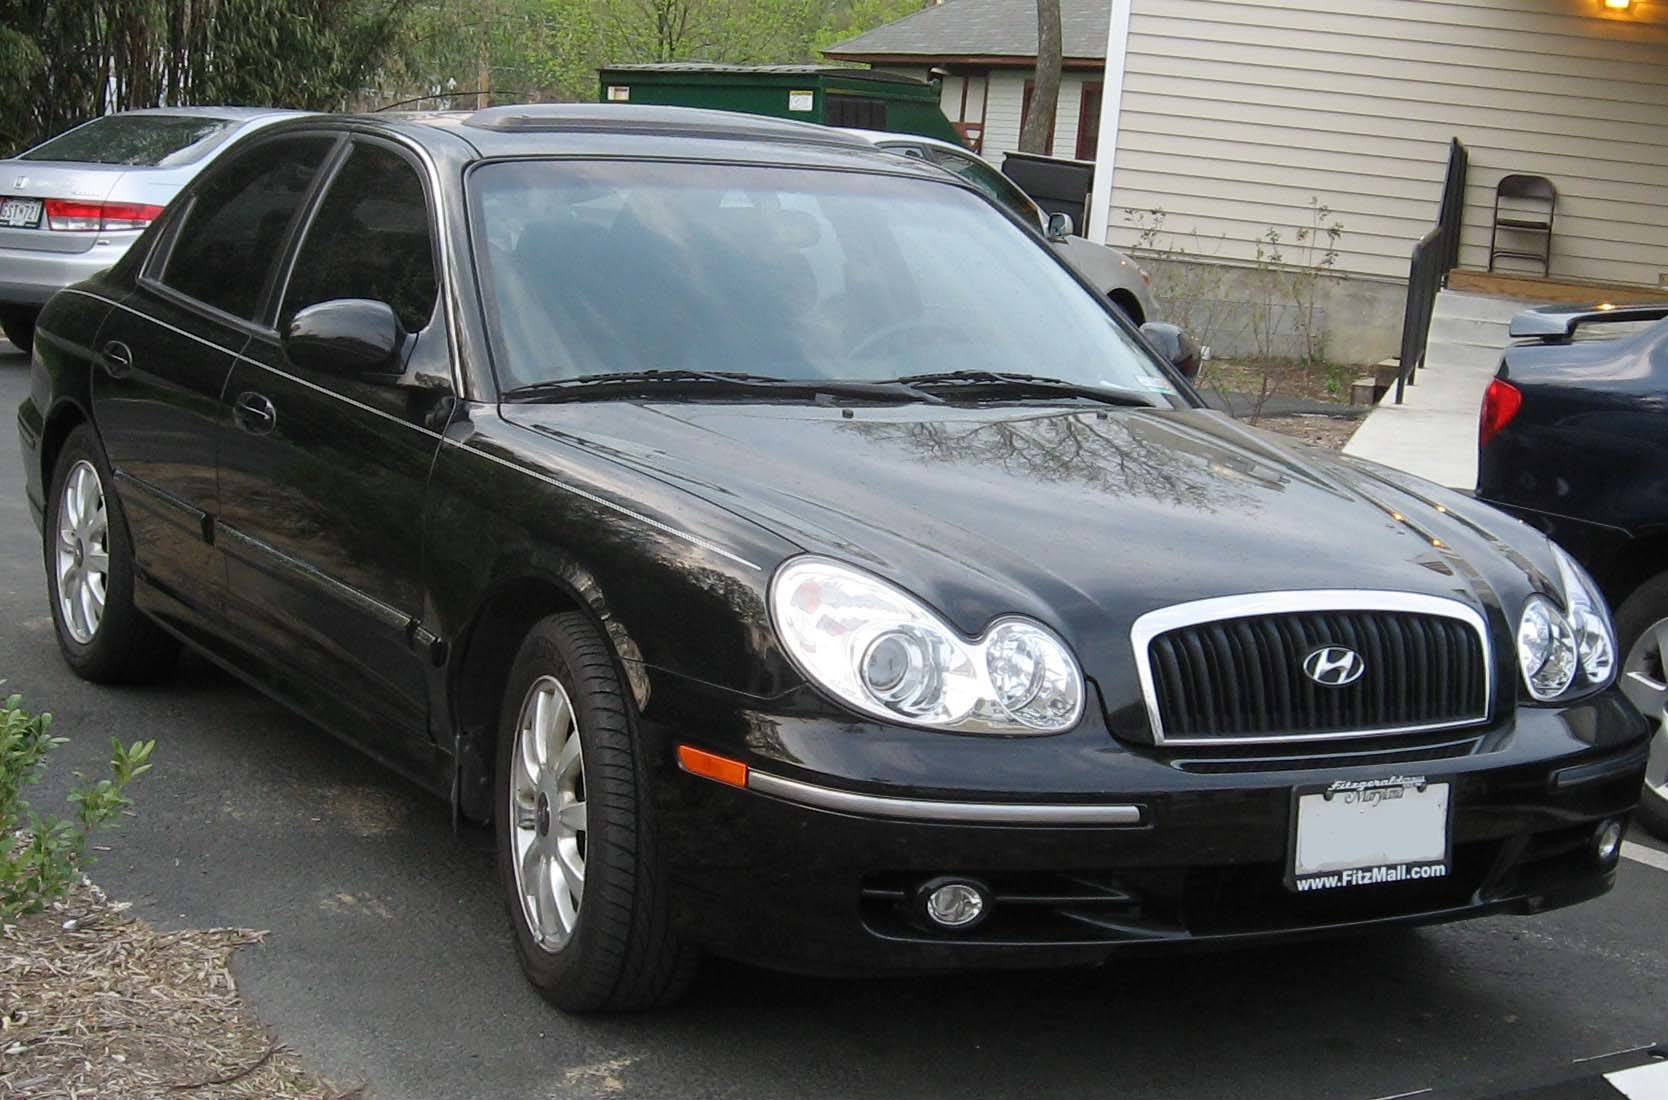 2003 Hyundai Sonata Base Sedan 2 7l V6 Auto